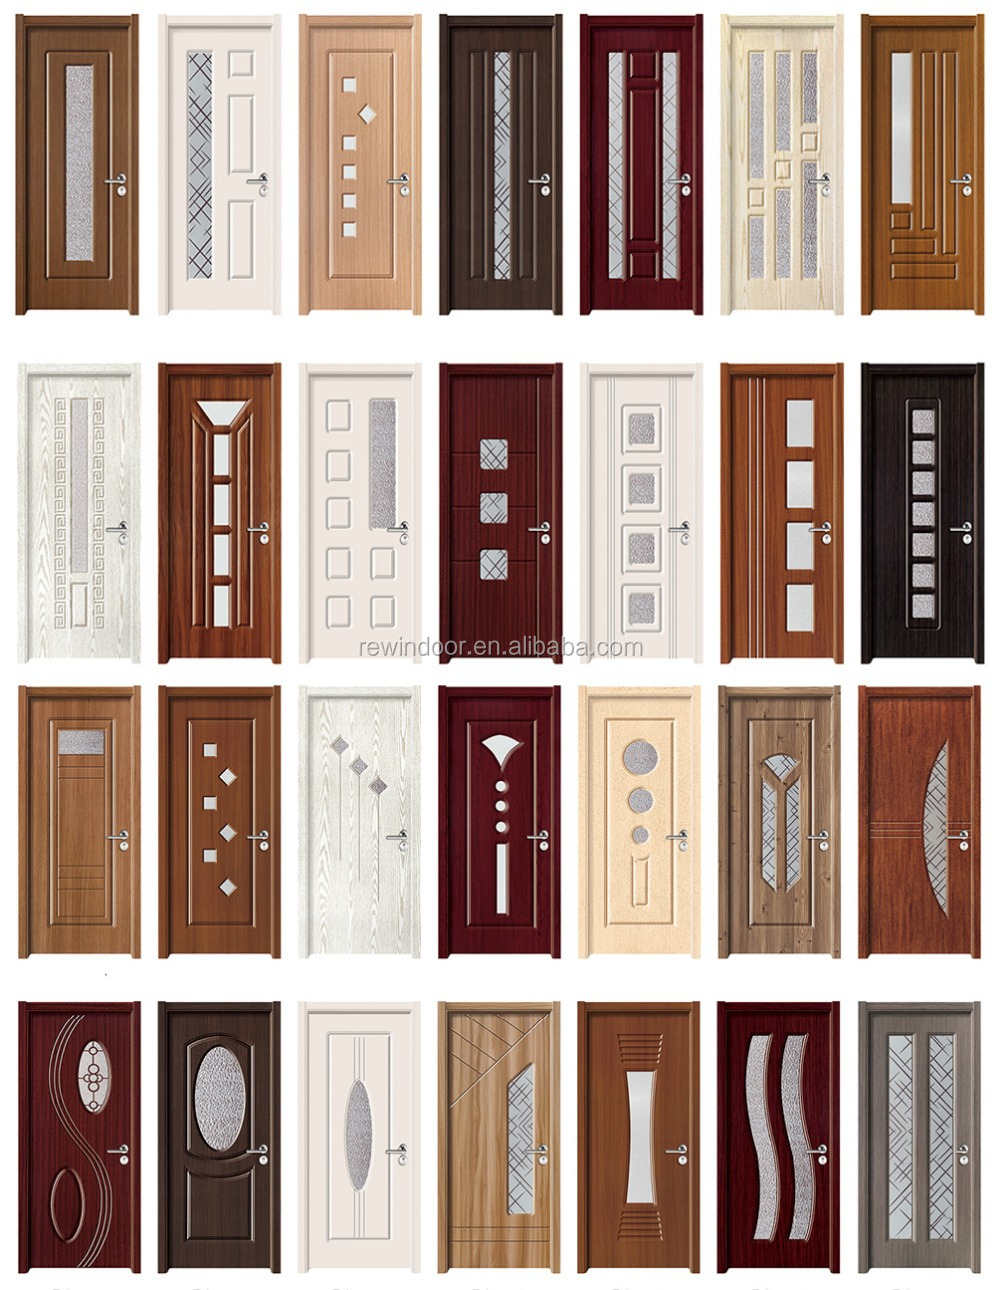 Anti theft new design wooden mosquito net door design for New main door design